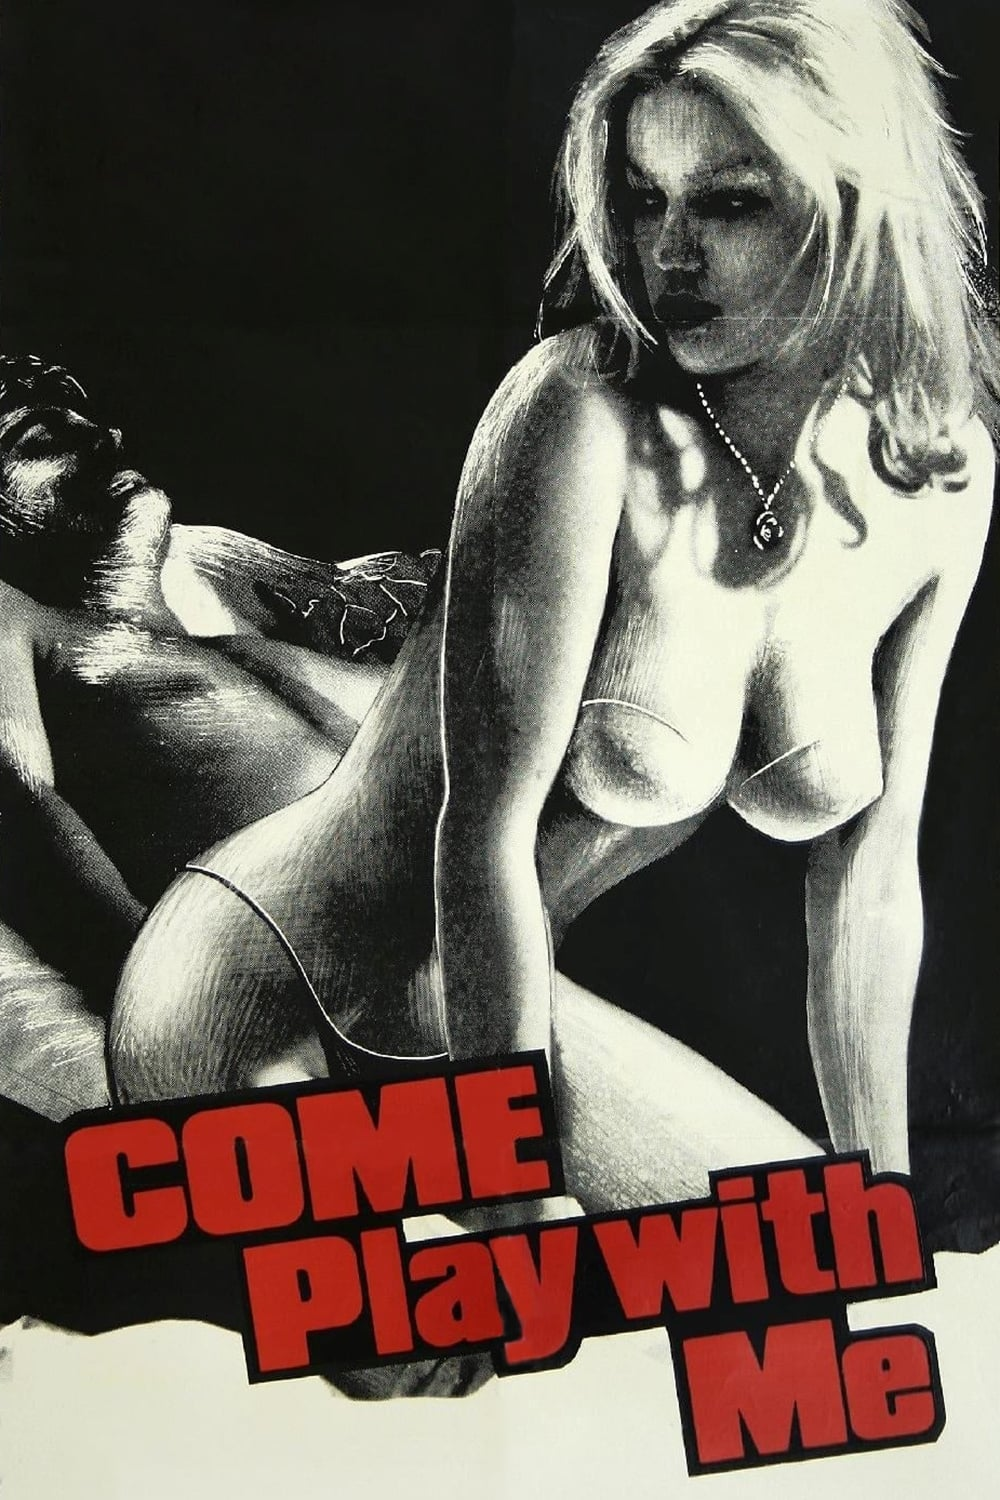 image for Come Play with Me